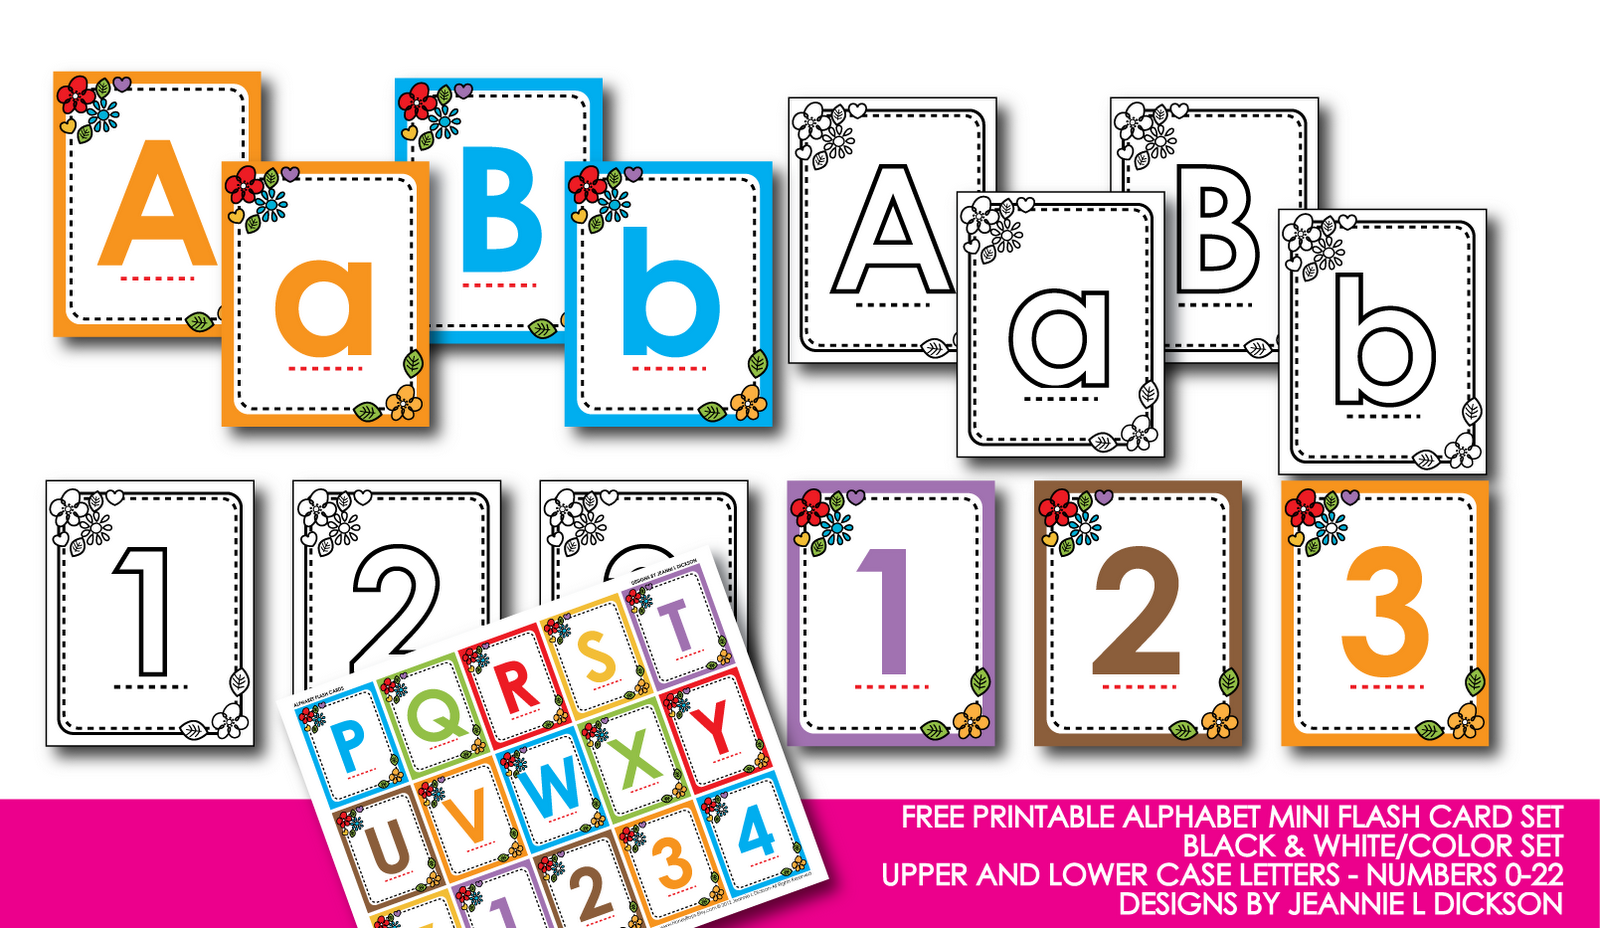 Free coloring pages of lower case flash cards for Flash cards alphabet letters